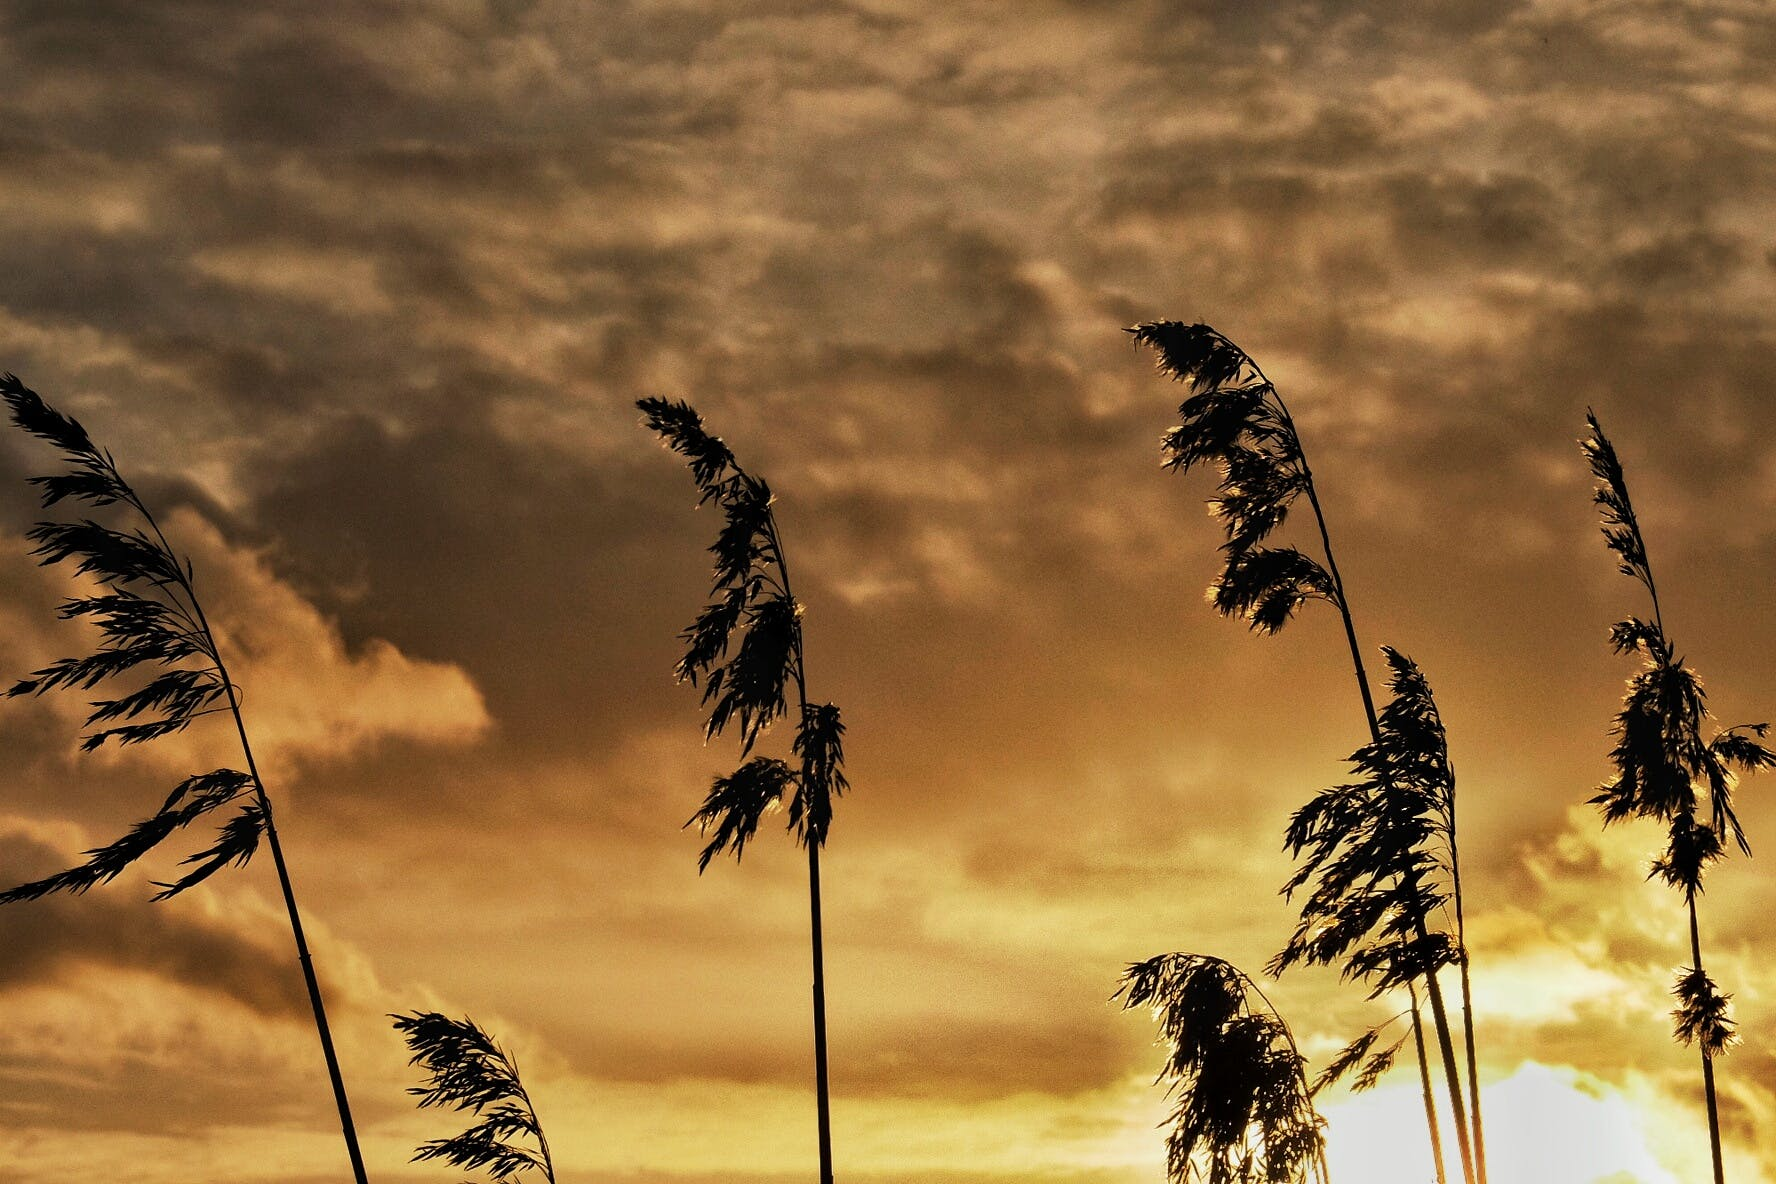 Free stock photo of nature, sky, sunset, clouds